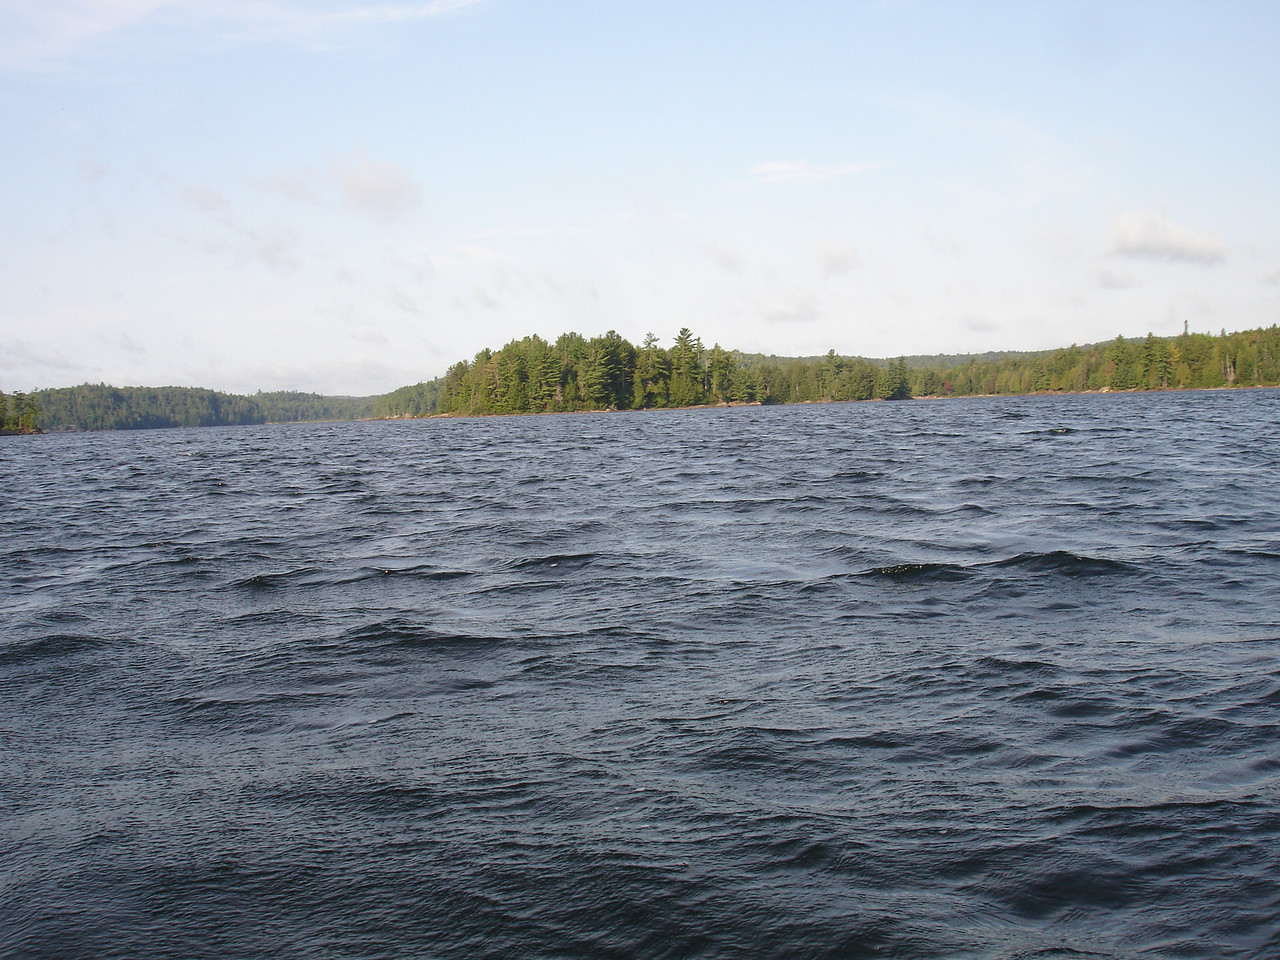 Looking back southwestward on Lake Louisa.